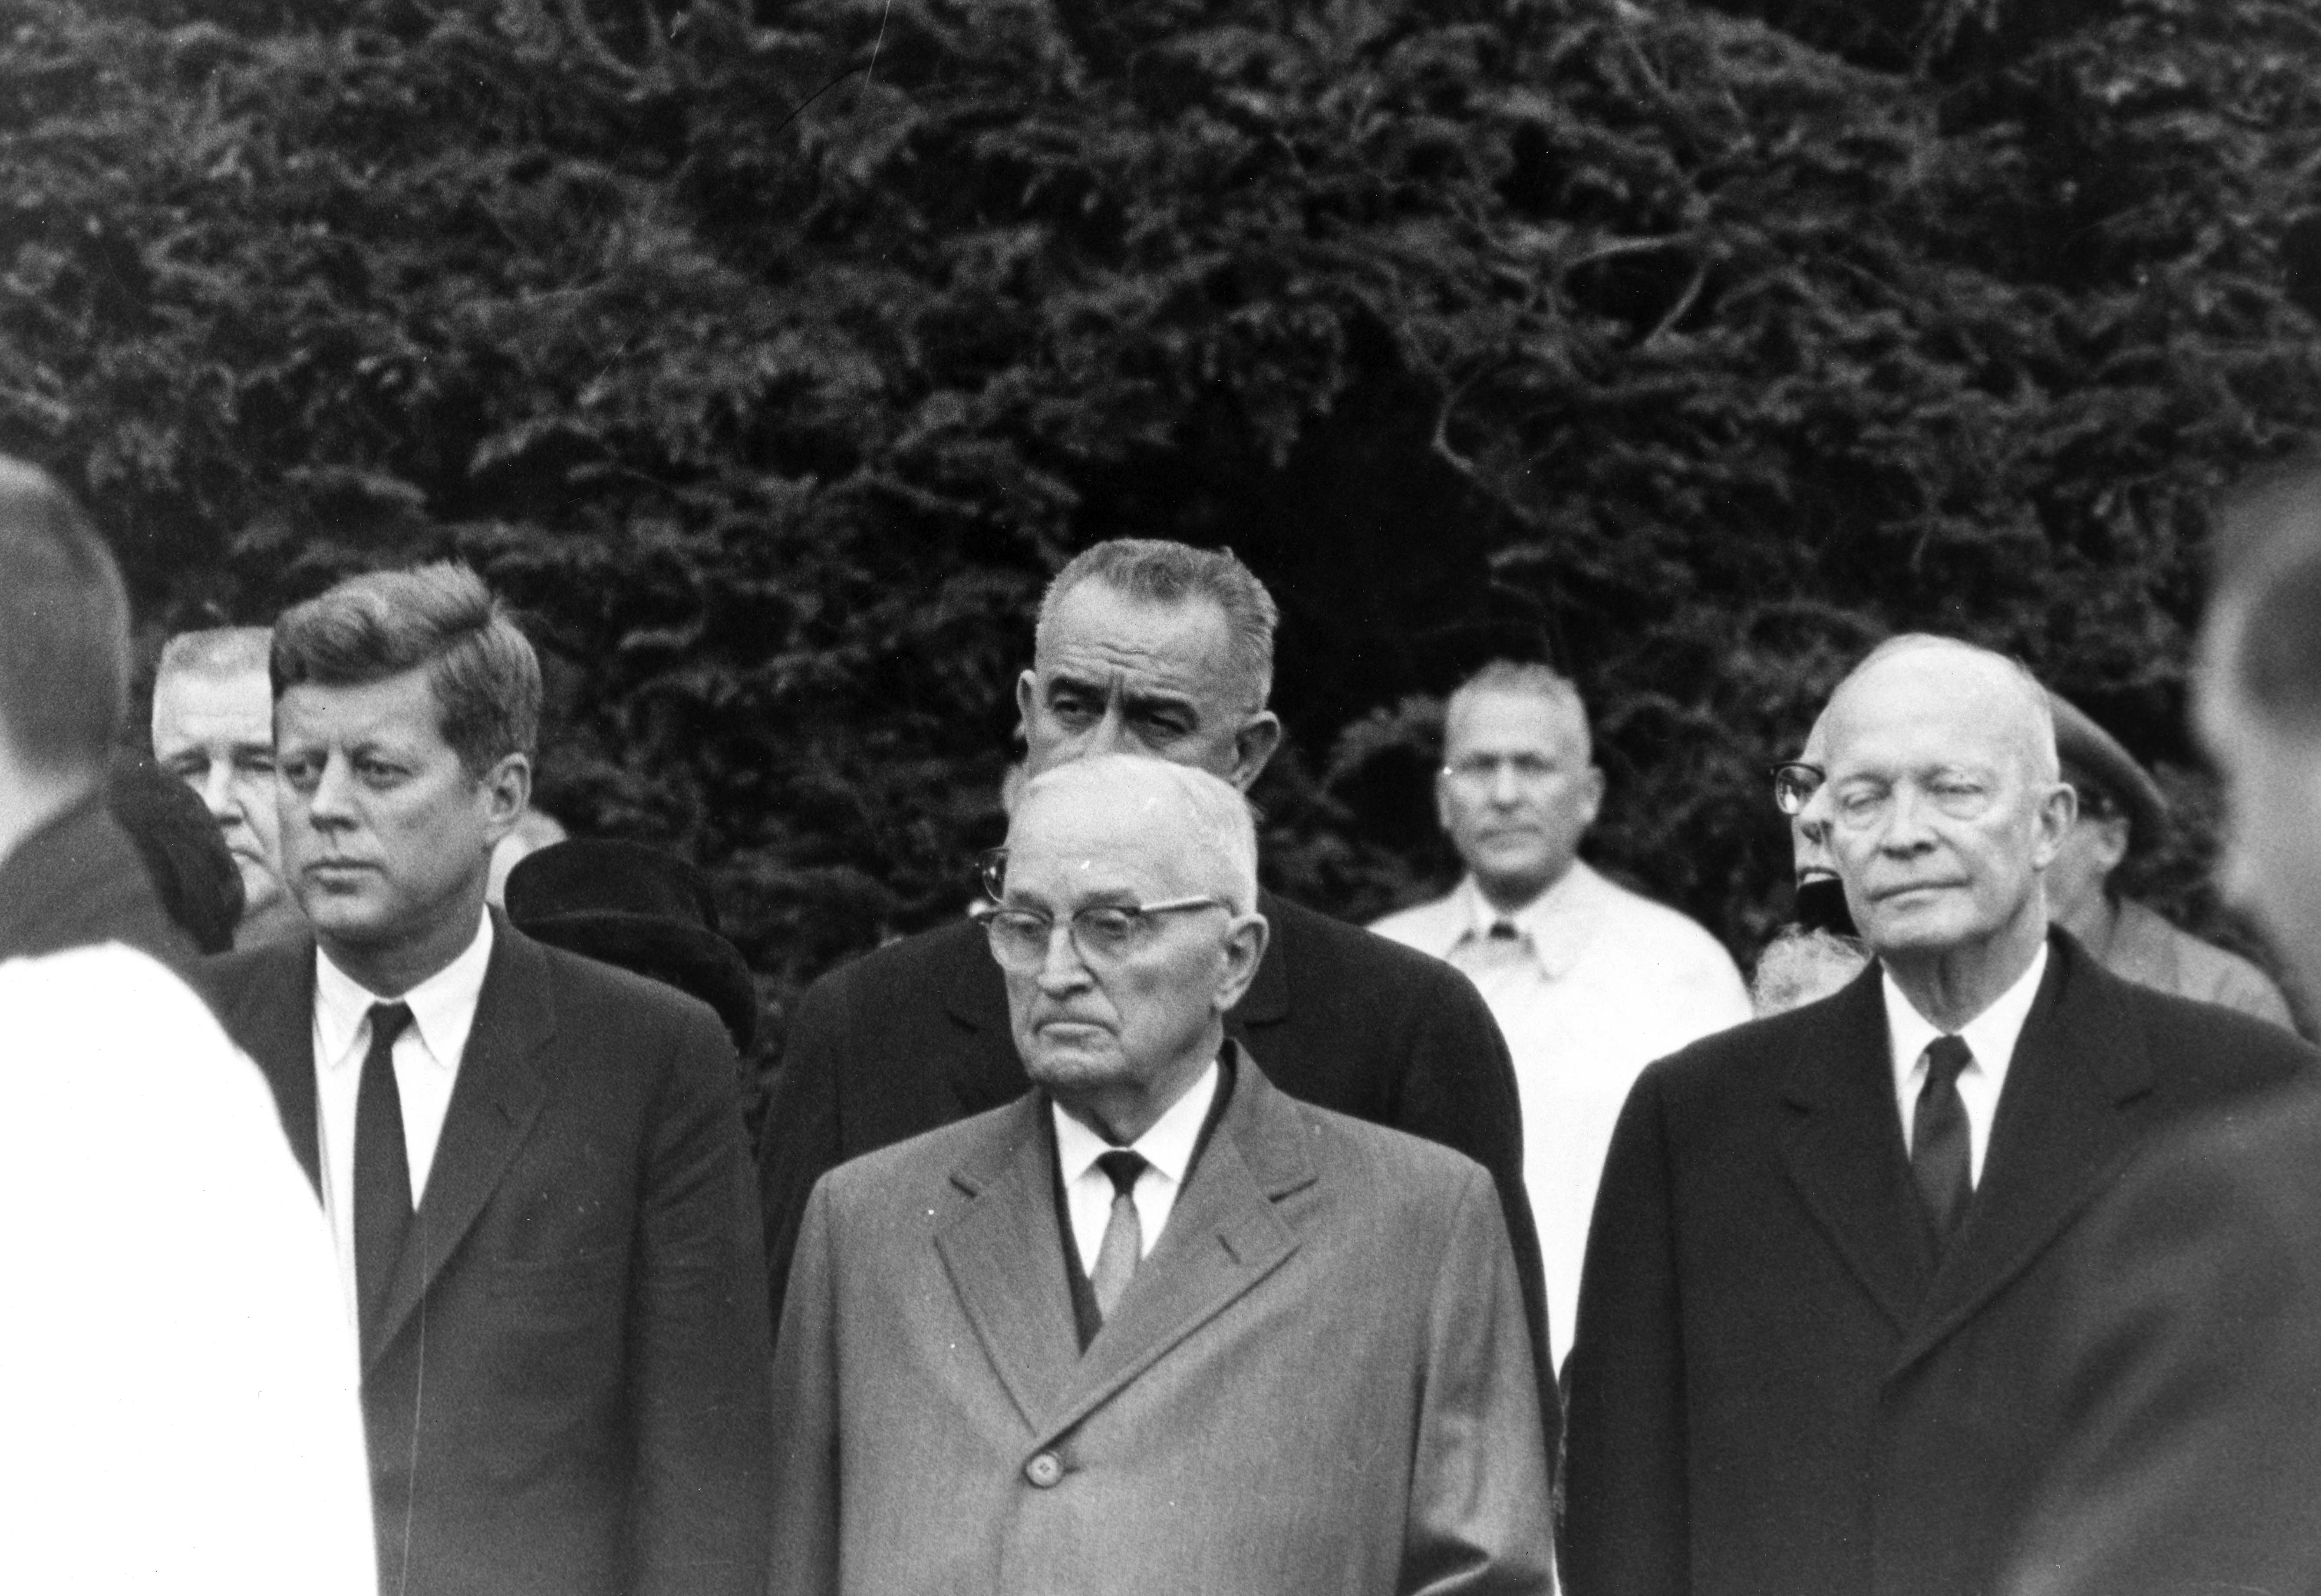 eisenhower and kennedy A list of president eisenhower's top five most disliked contemporaries ike's top 5 most disliked contemporaries eisenhower considered john kennedy too.